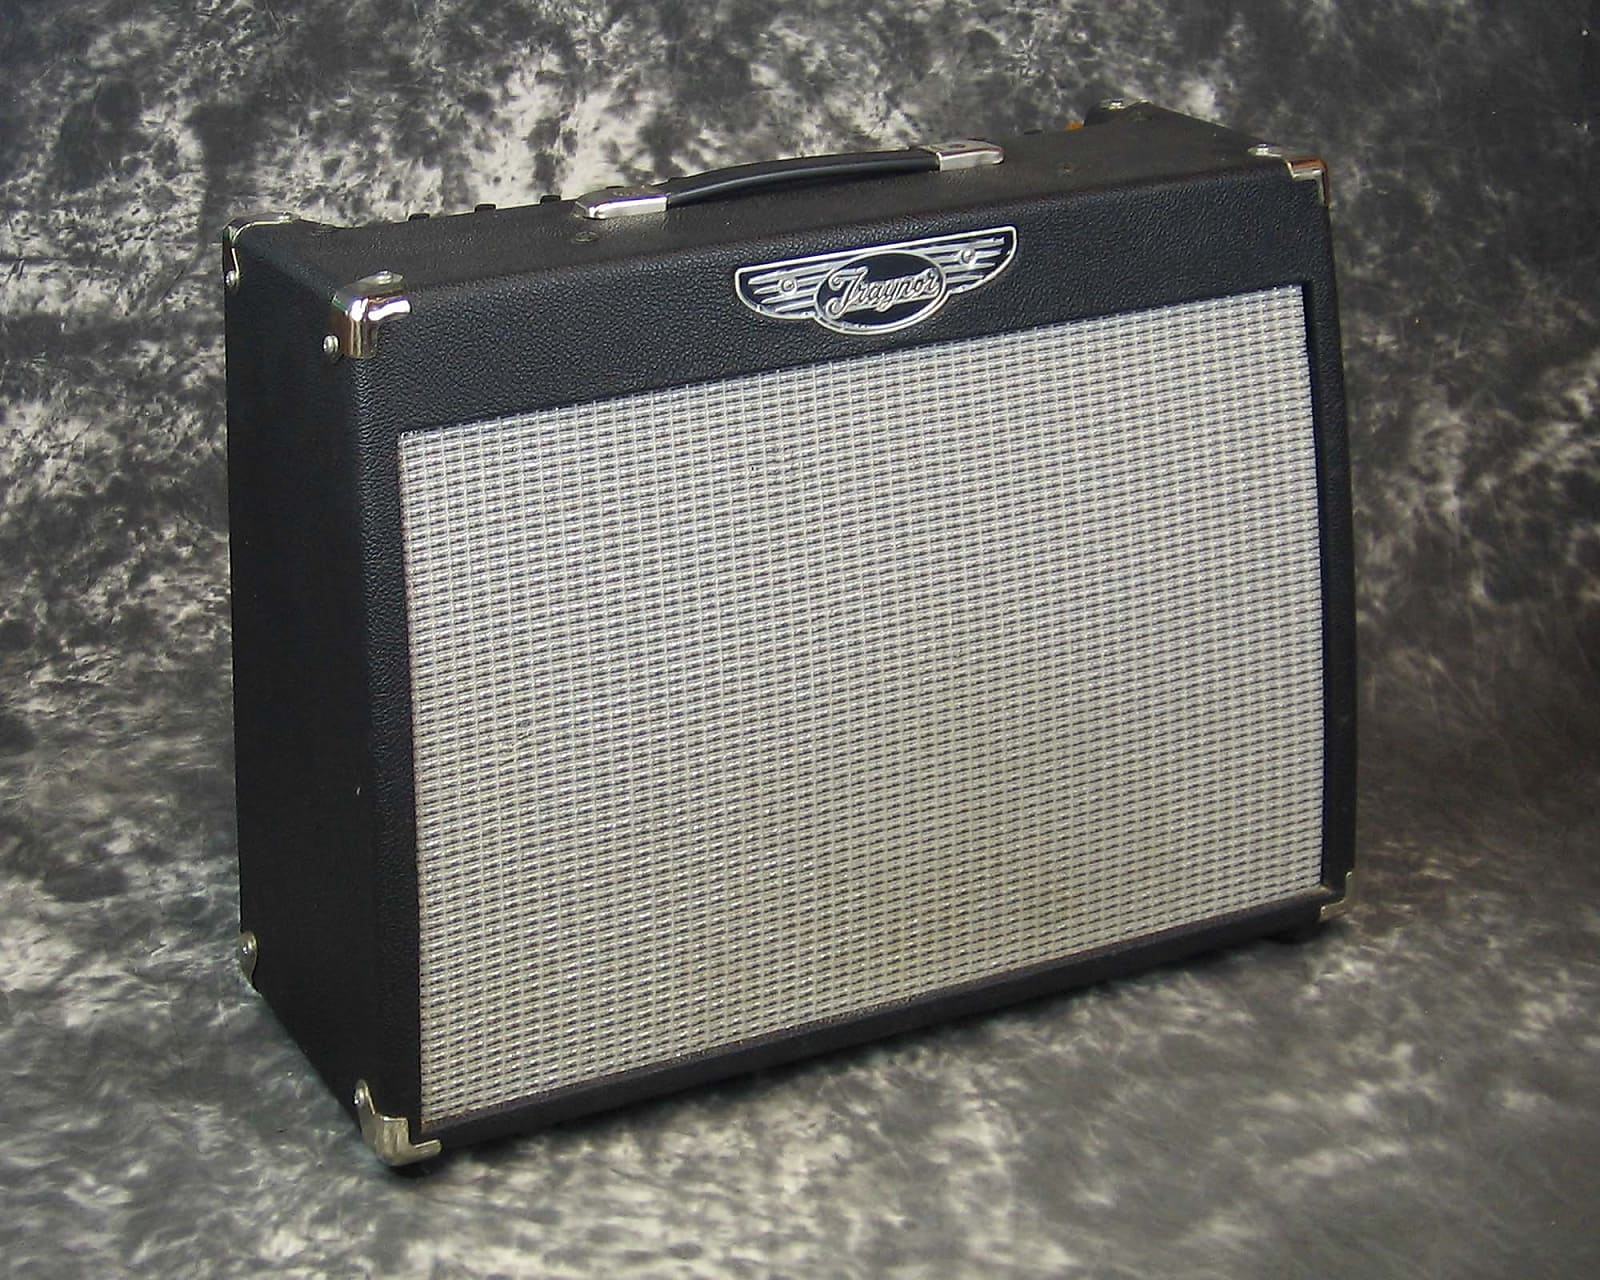 VG used Traynor YCV40 all-tube guitar amplifier